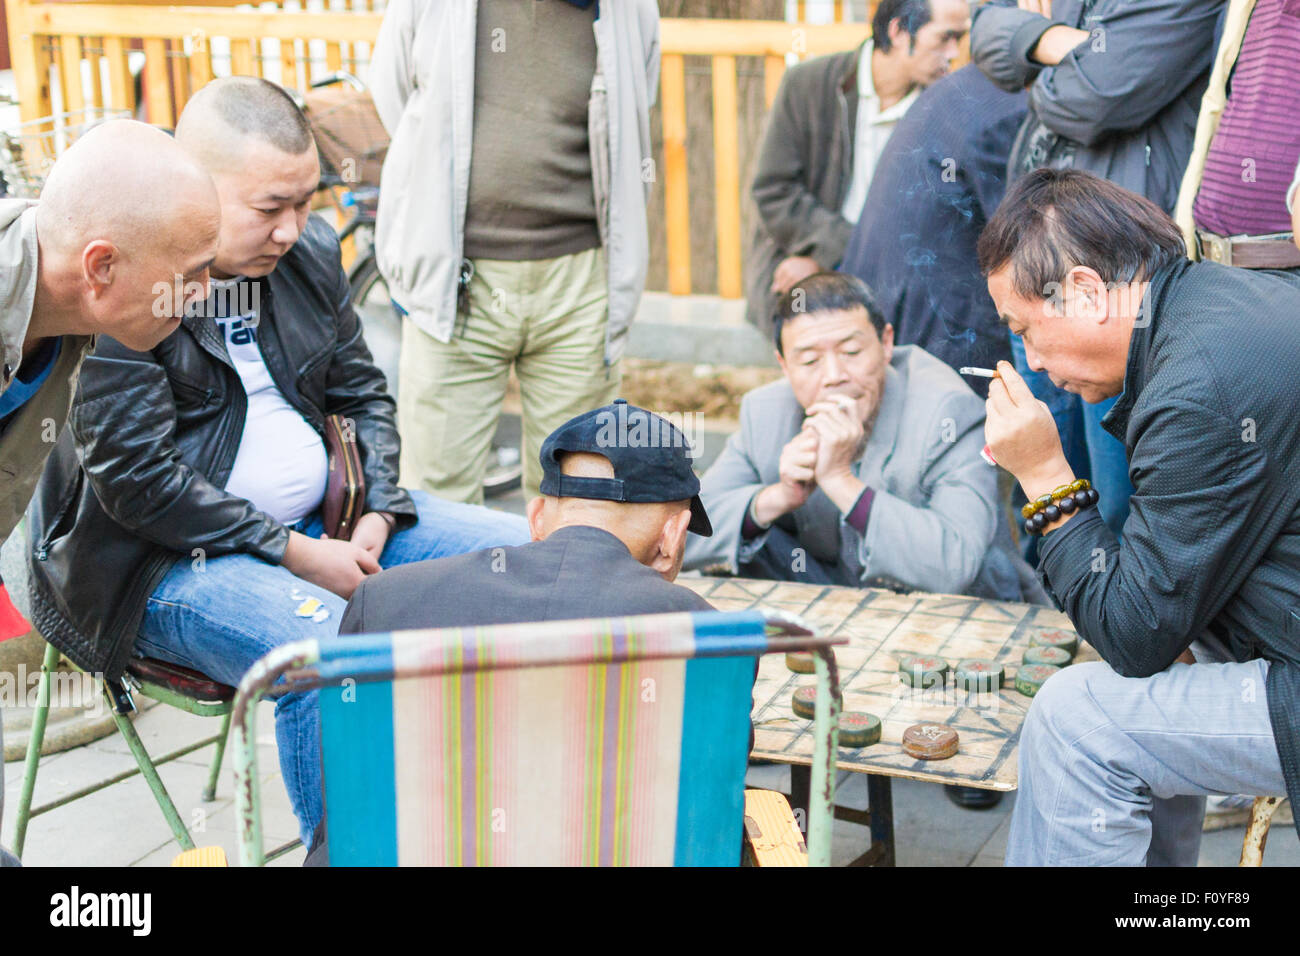 Chinese men spending time outdoors playing xiangqi (Chinese chess). - Stock Image